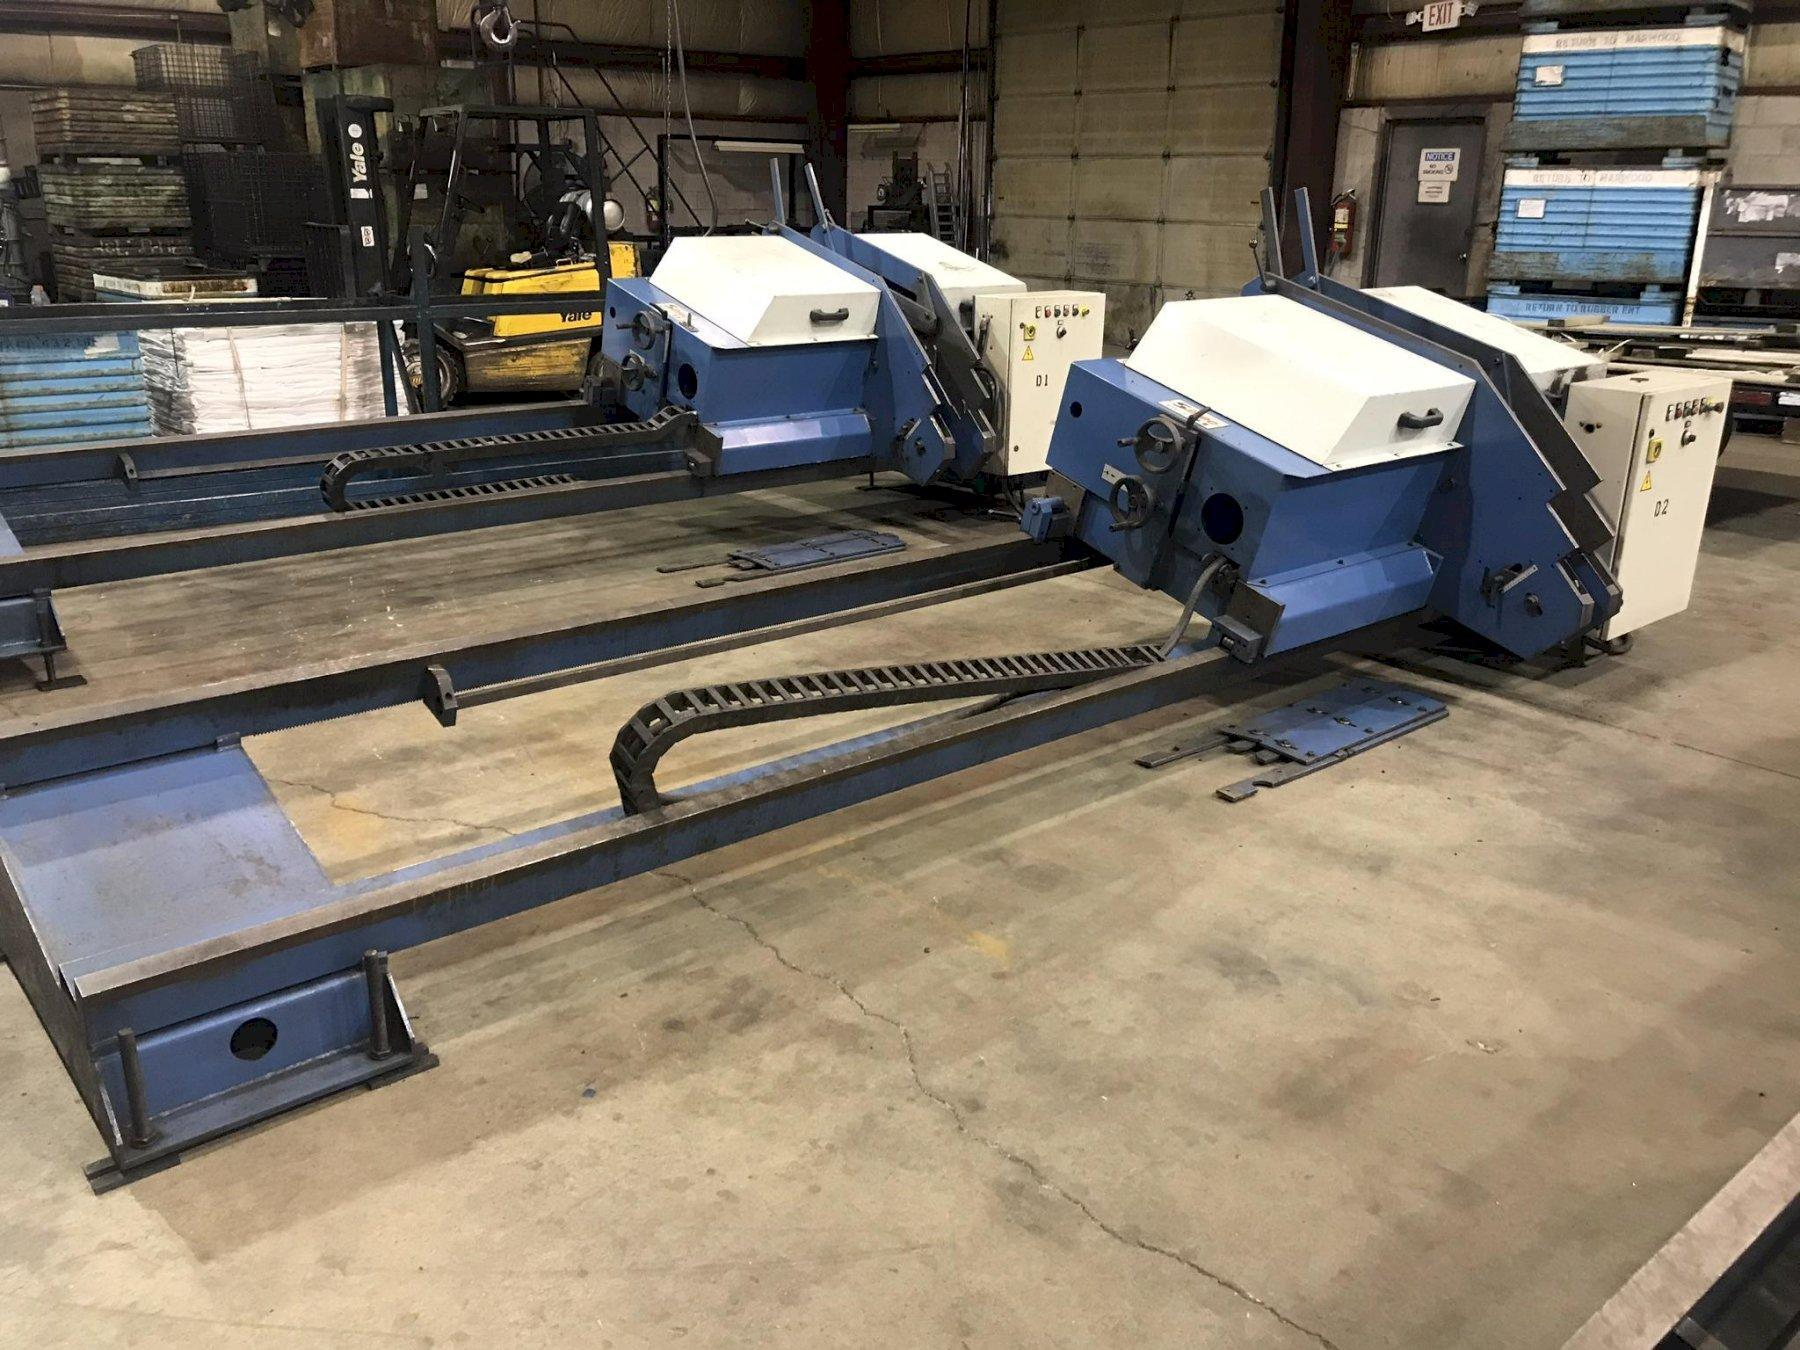 "USED SIMEC ADJUSTABLE LENGTH 4"" WIRE BRUSH DEBURRING MACHINE, MODEL SB3000S, Stock No. 10686, Year 2002"